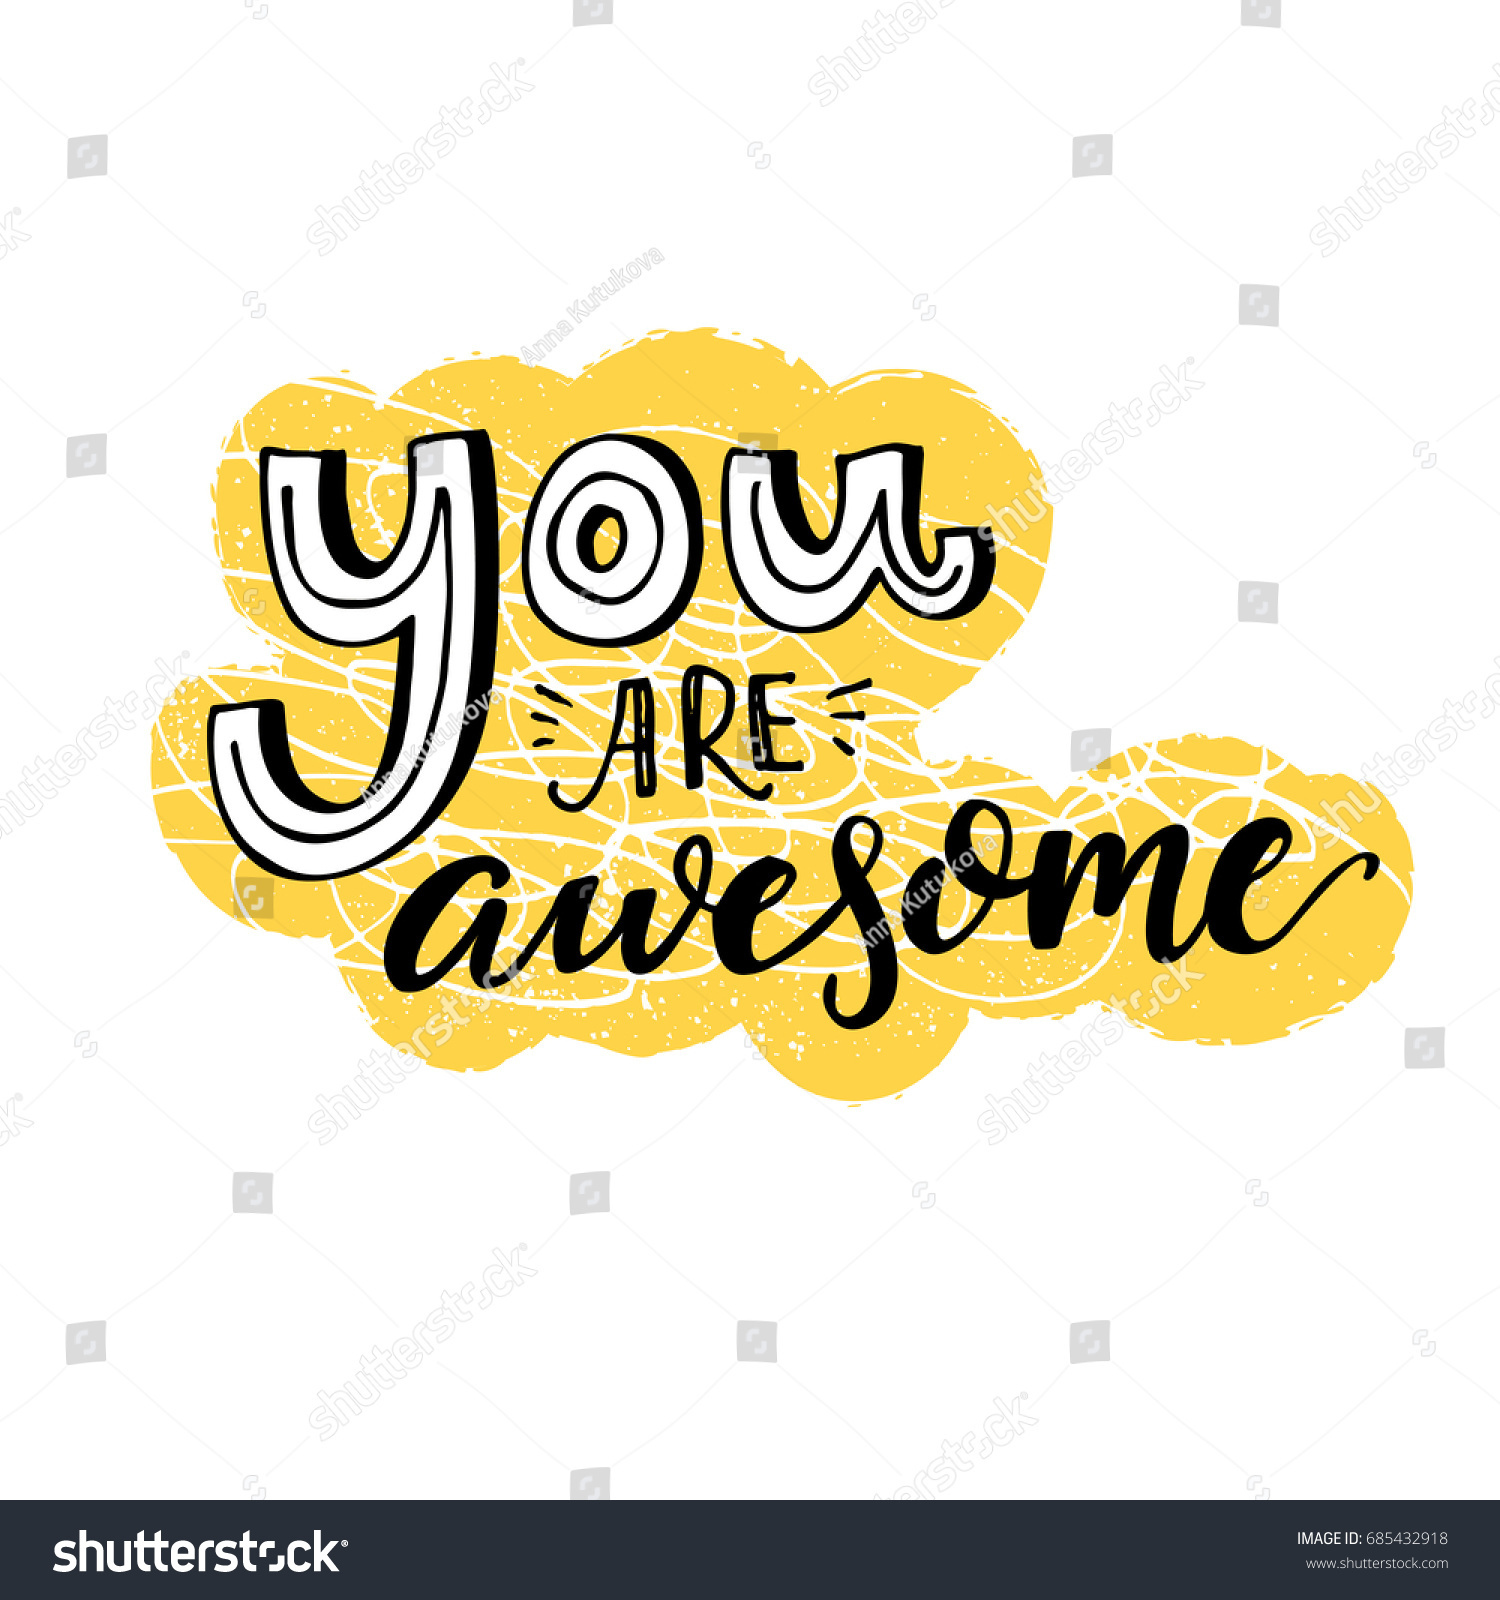 You Are Awesome Motivational Saying Inspirational Quote Design For Greeting Cards Black Letters